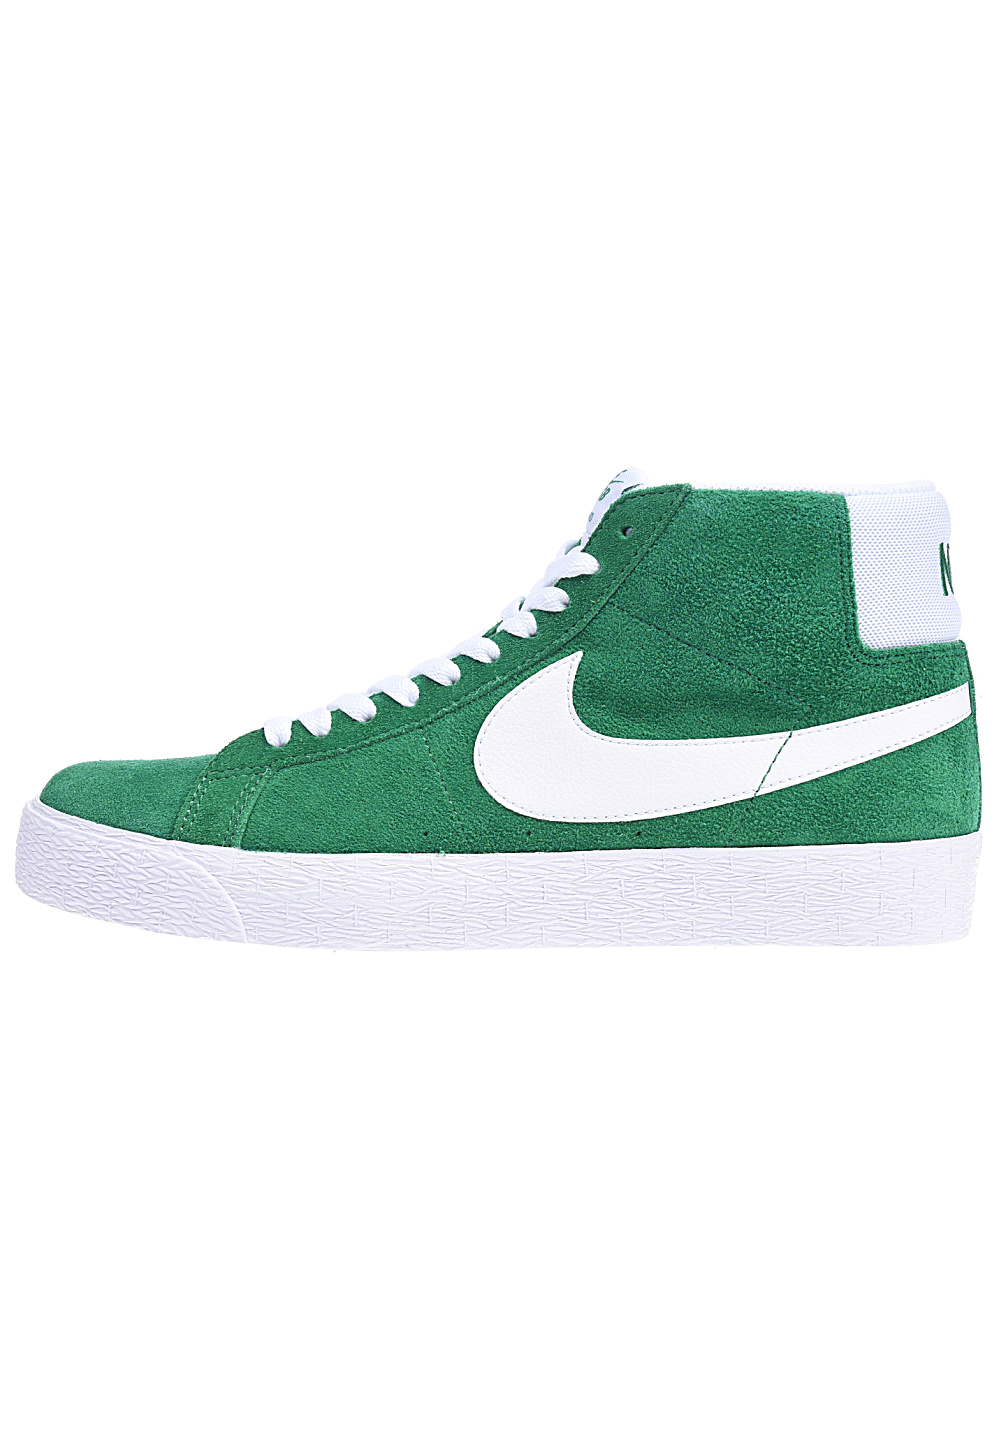 sale retailer 25208 b9596 NIKE SB Zoom Blazer Mid - Sneakers for Men - Green